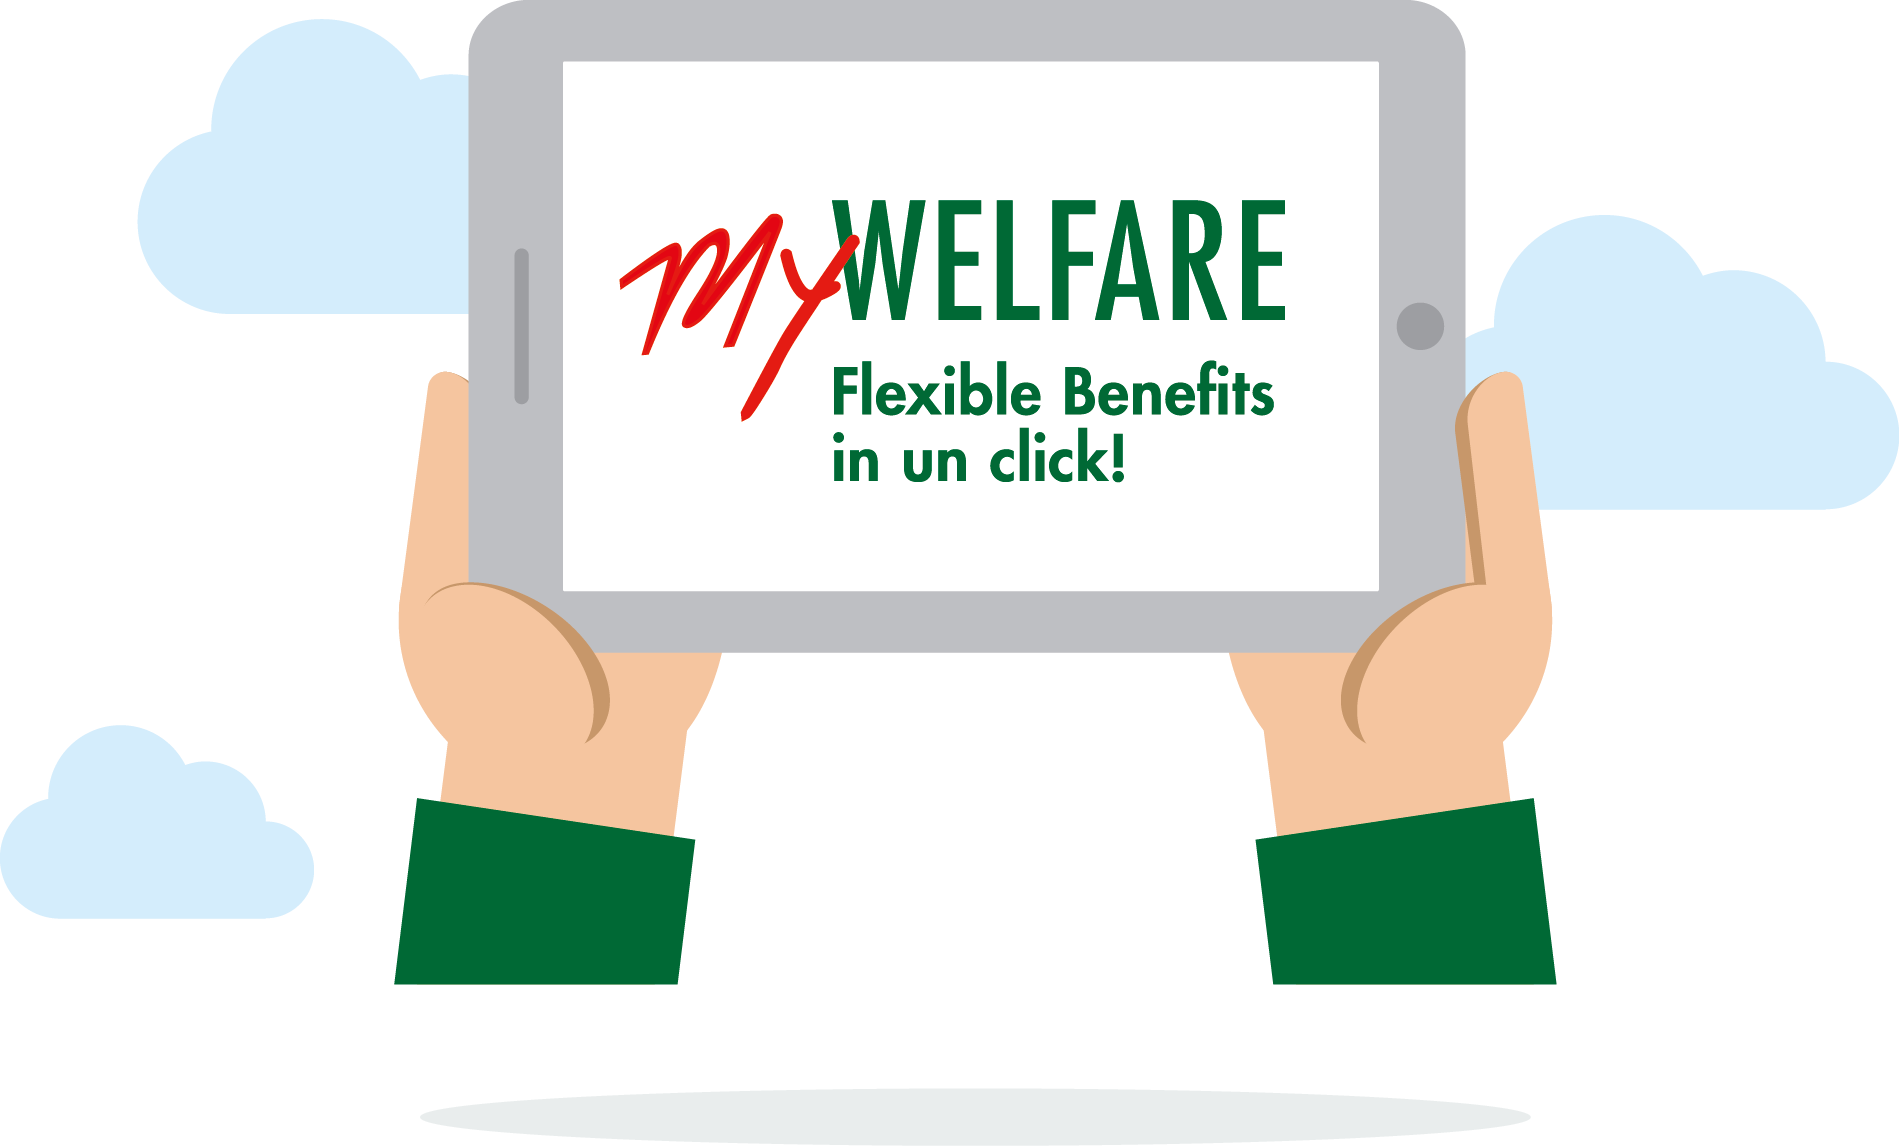 mywelfare welfare